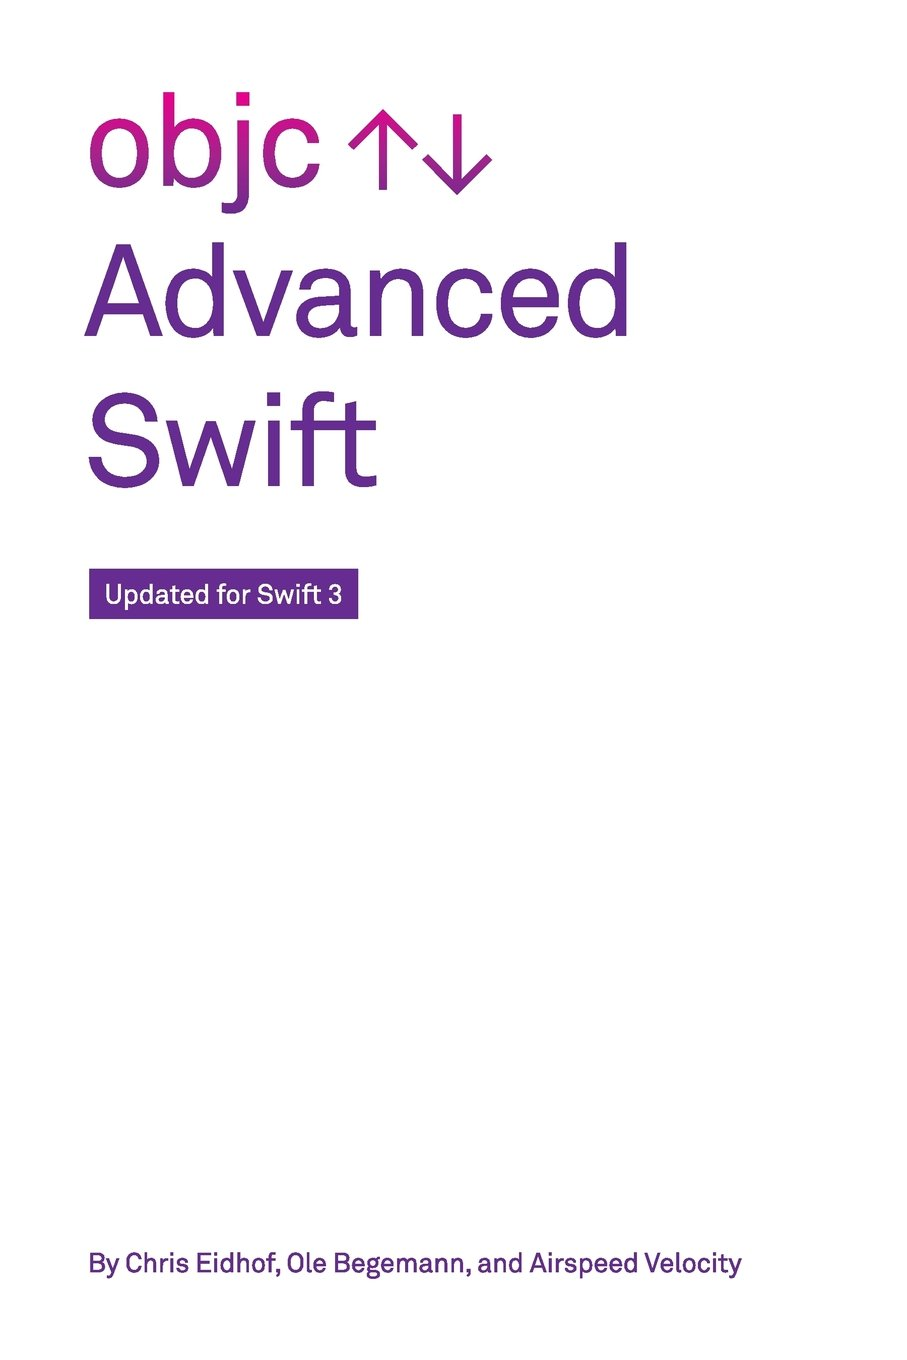 Advanced Swift: Updated for Swift 3 by Chris Eidhof, Ole Begemann, Airspeed Velocity